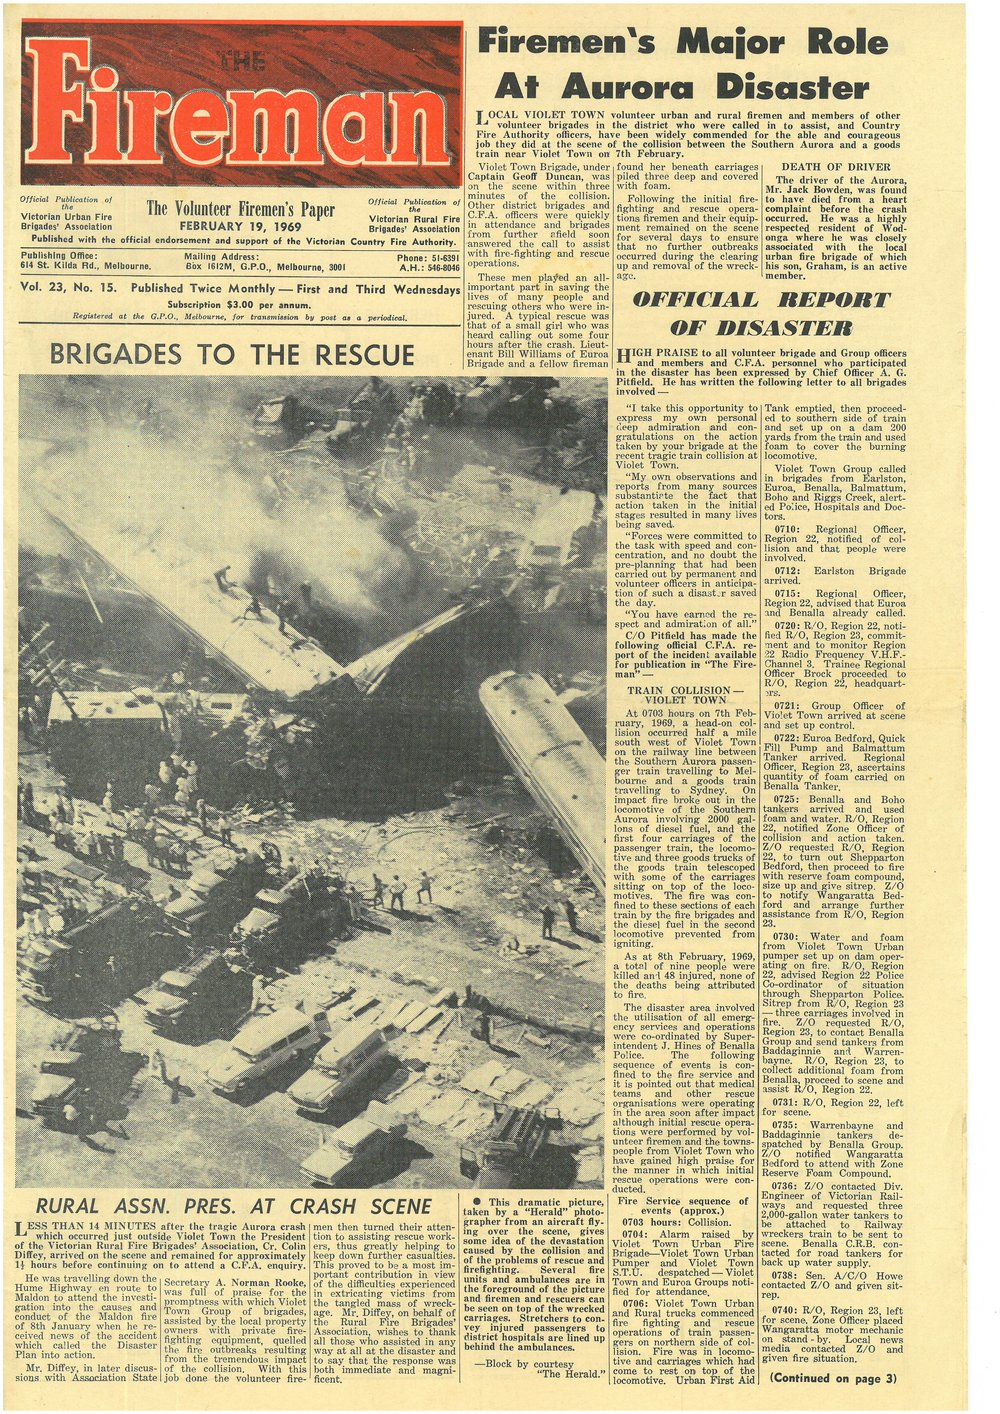 Firemans newspaper from February 1969